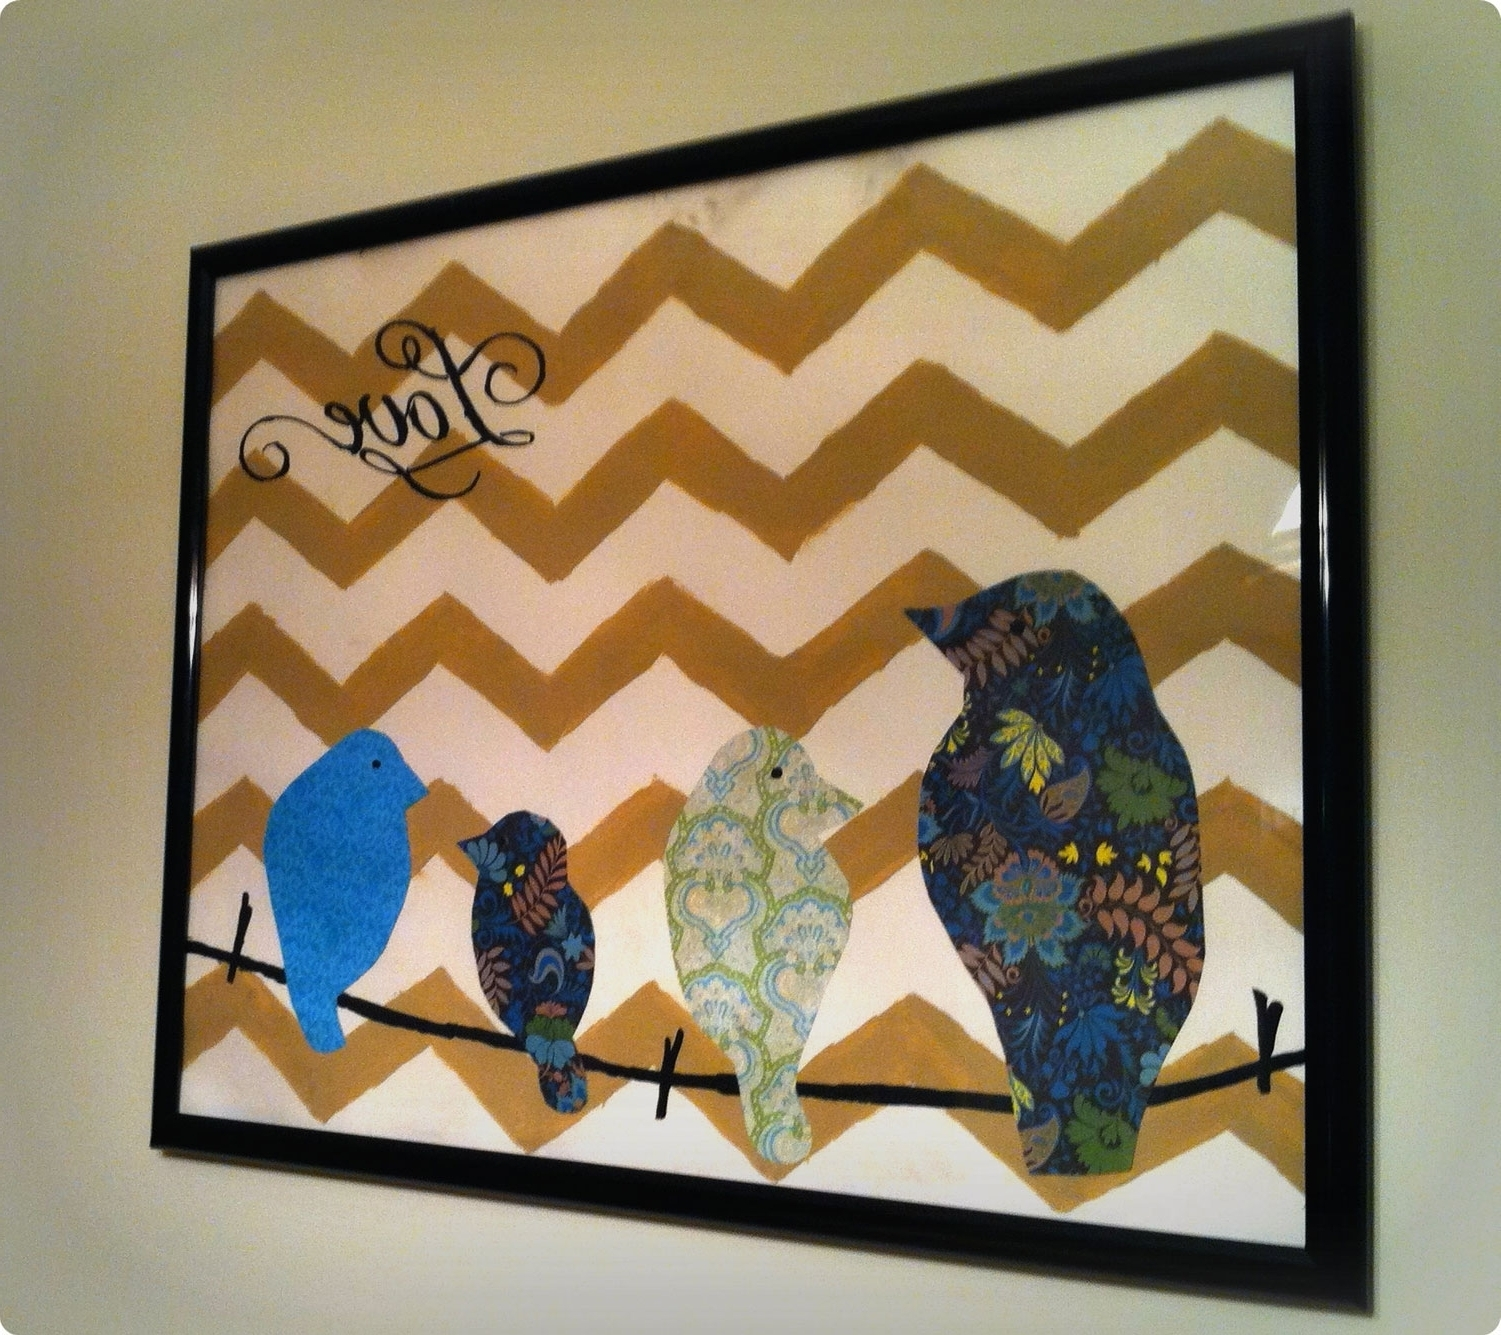 Top 15 Of Canvas Wall Art At Hobby Lobby With Regard To Recent Hobby Lobby Canvas Wall Art (View 4 of 15)